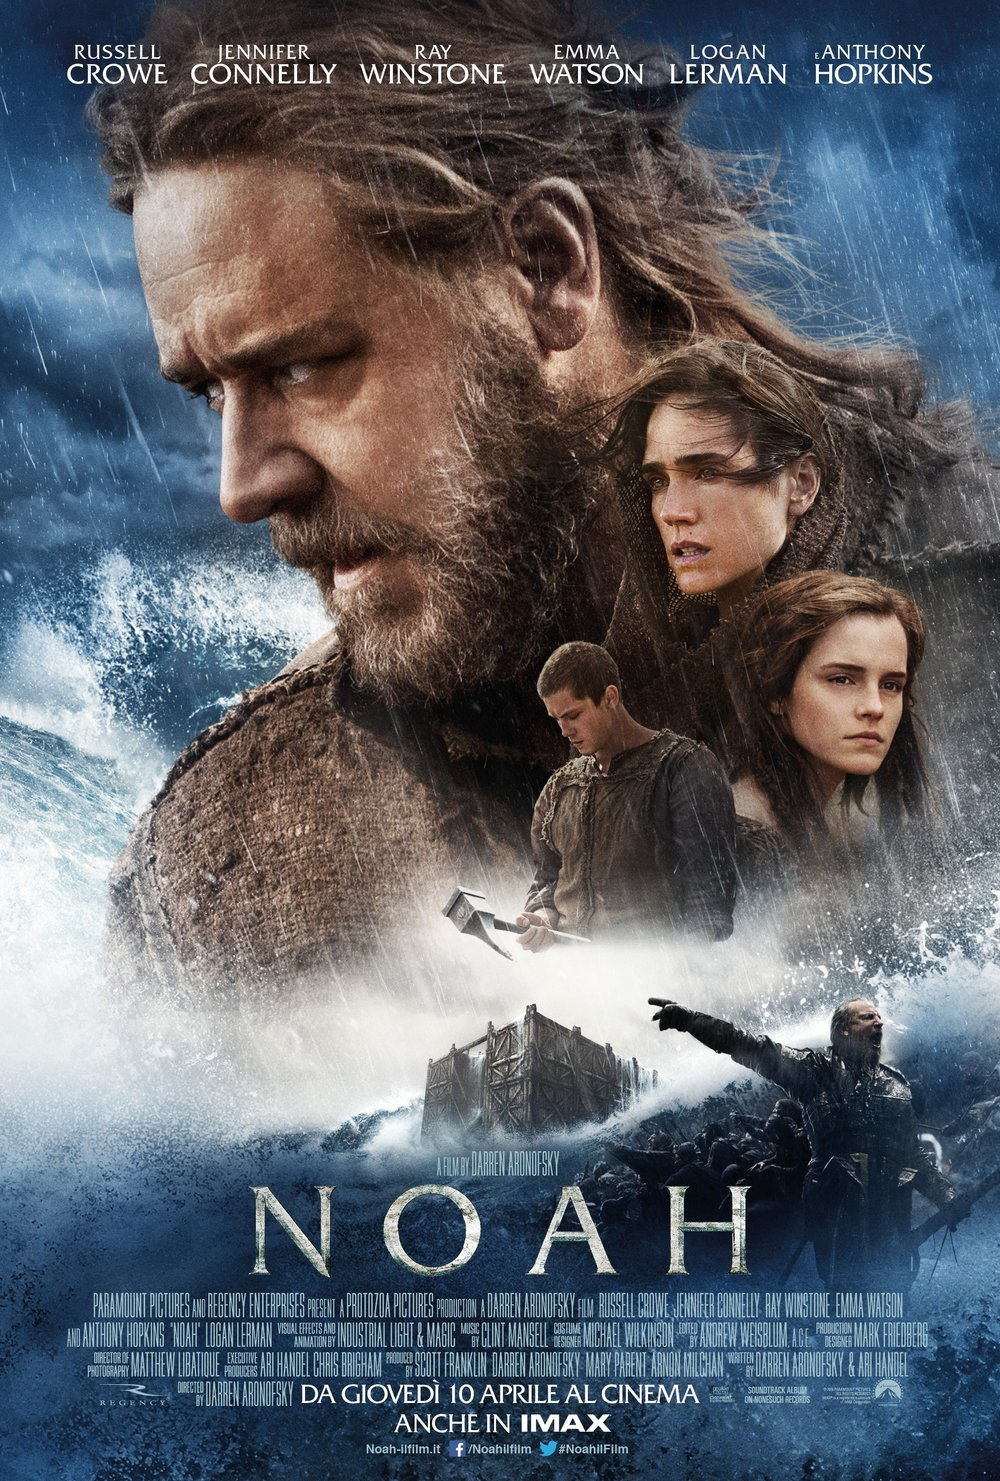 NOAH - Music by Clint Mansell Assistant Music Editing by Jessica Weiss